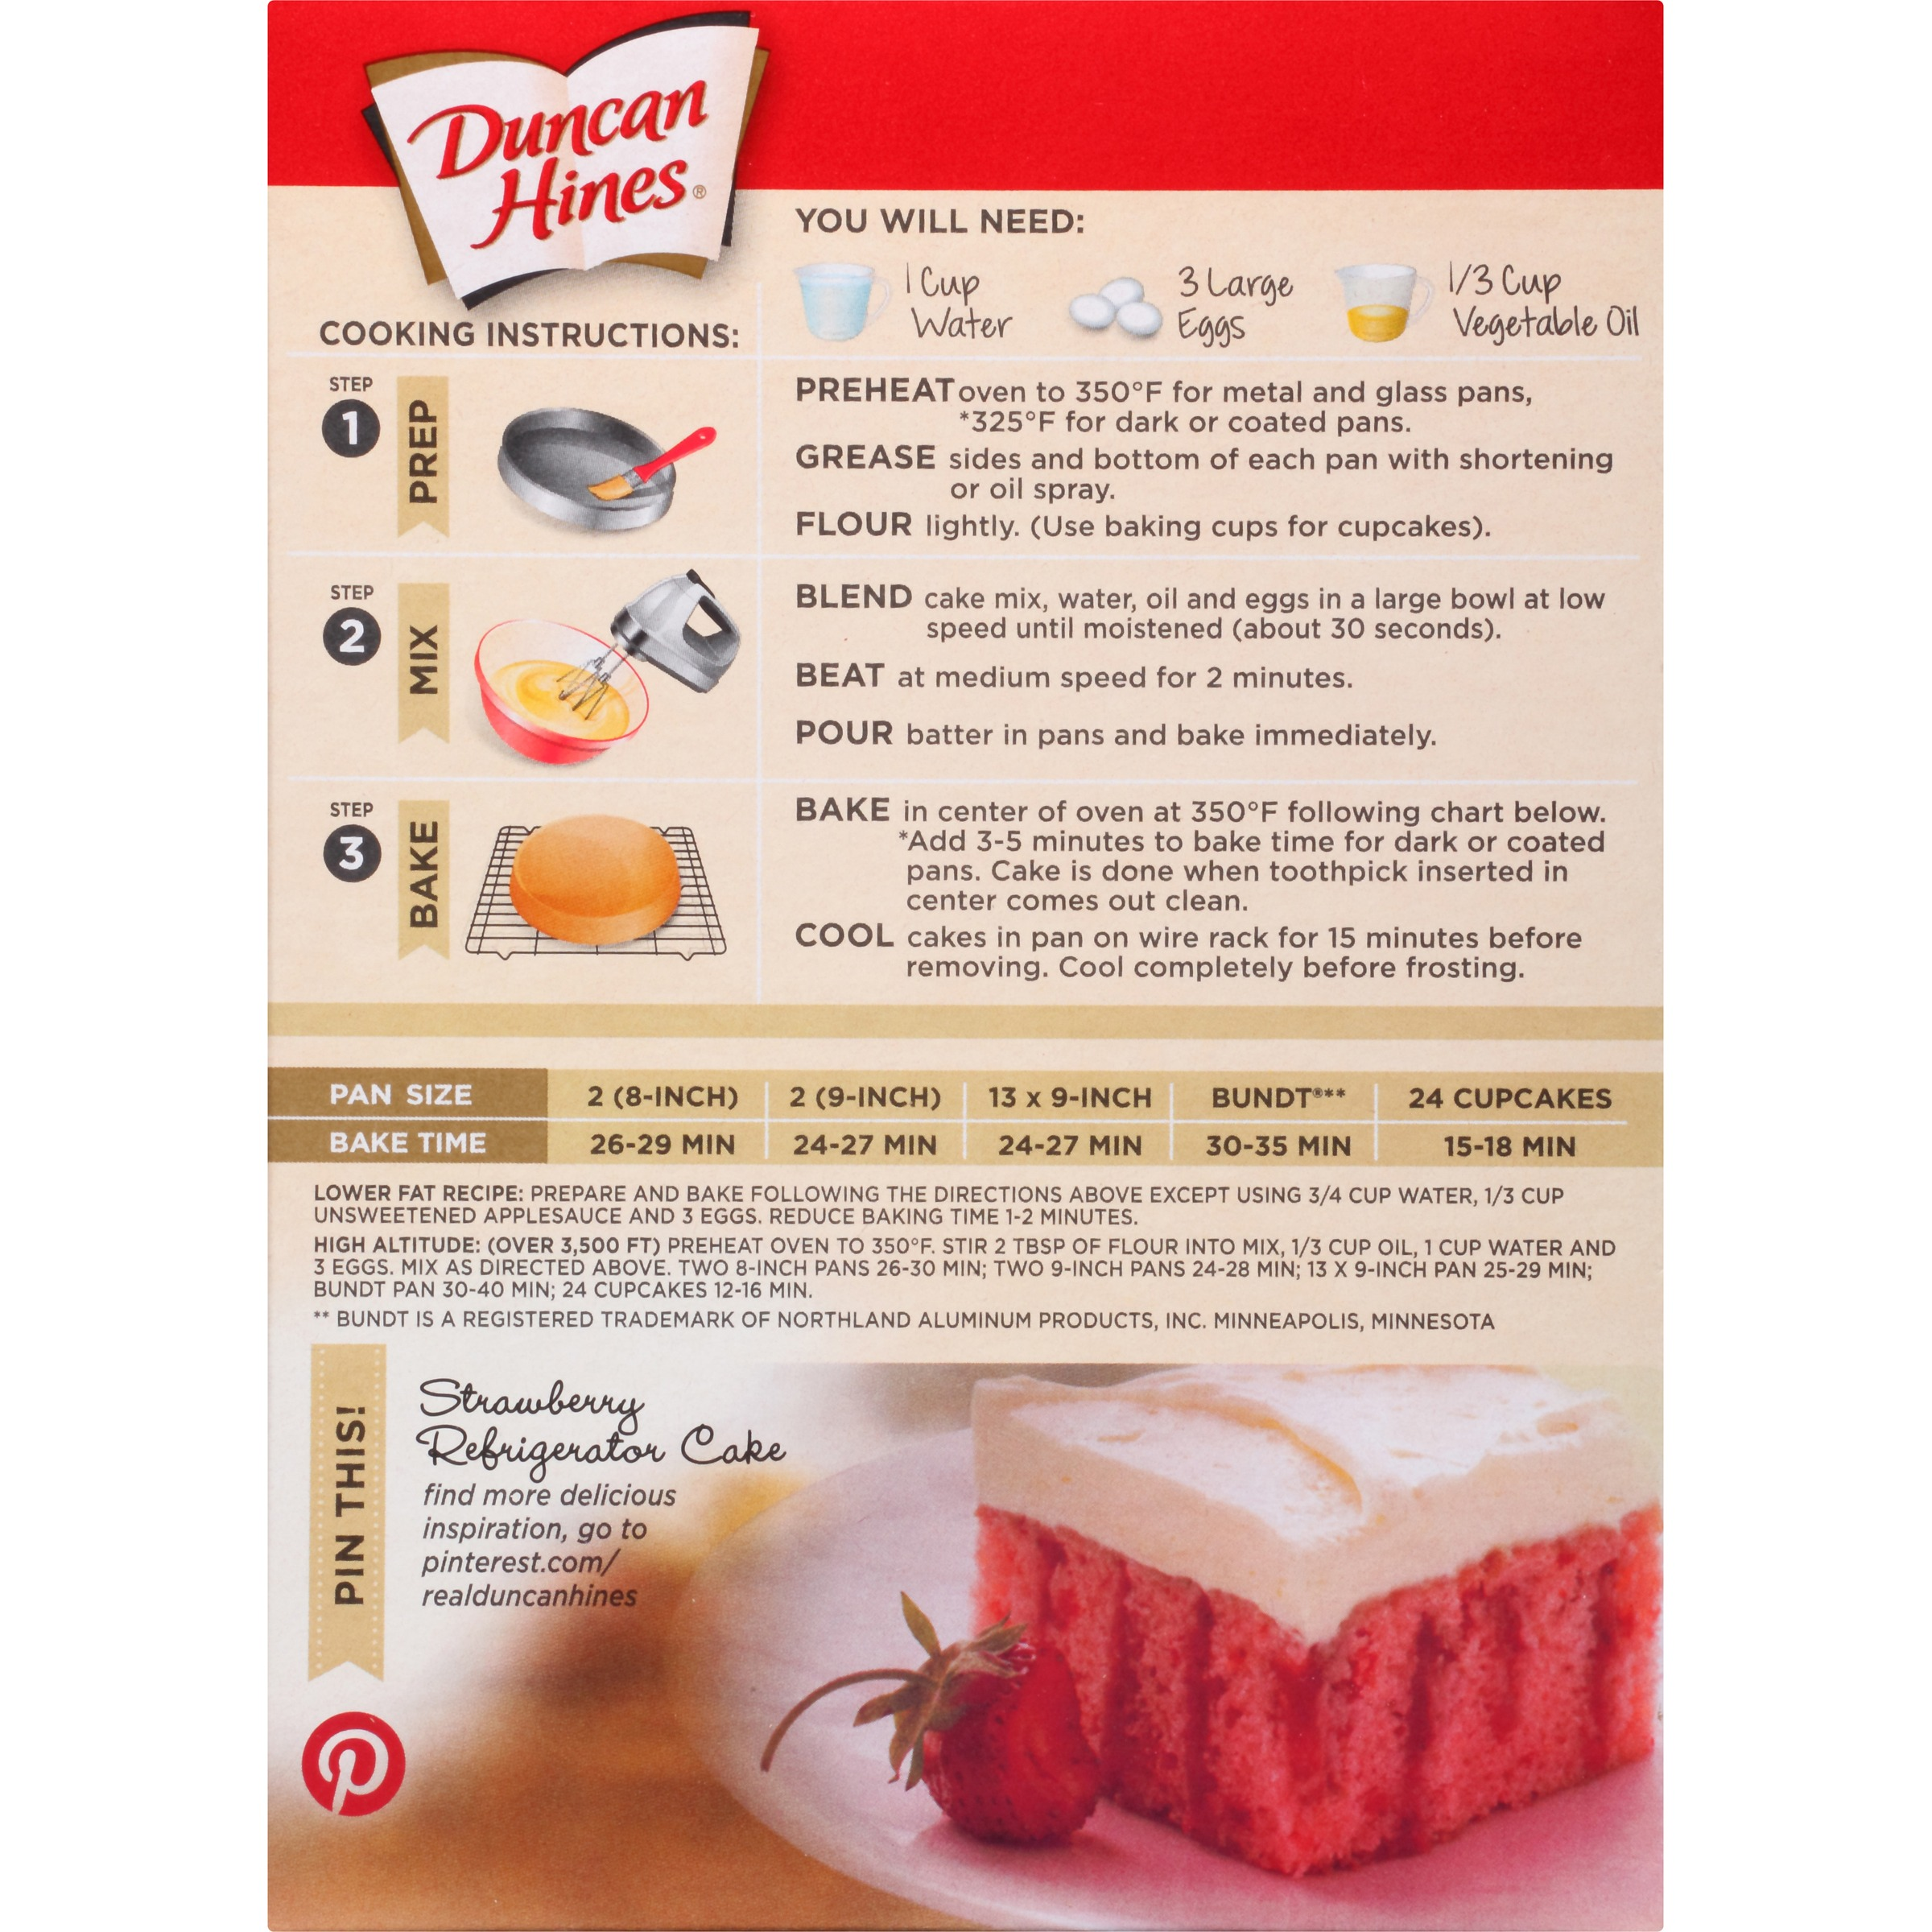 Strawberry Box Cake Mix Recipes